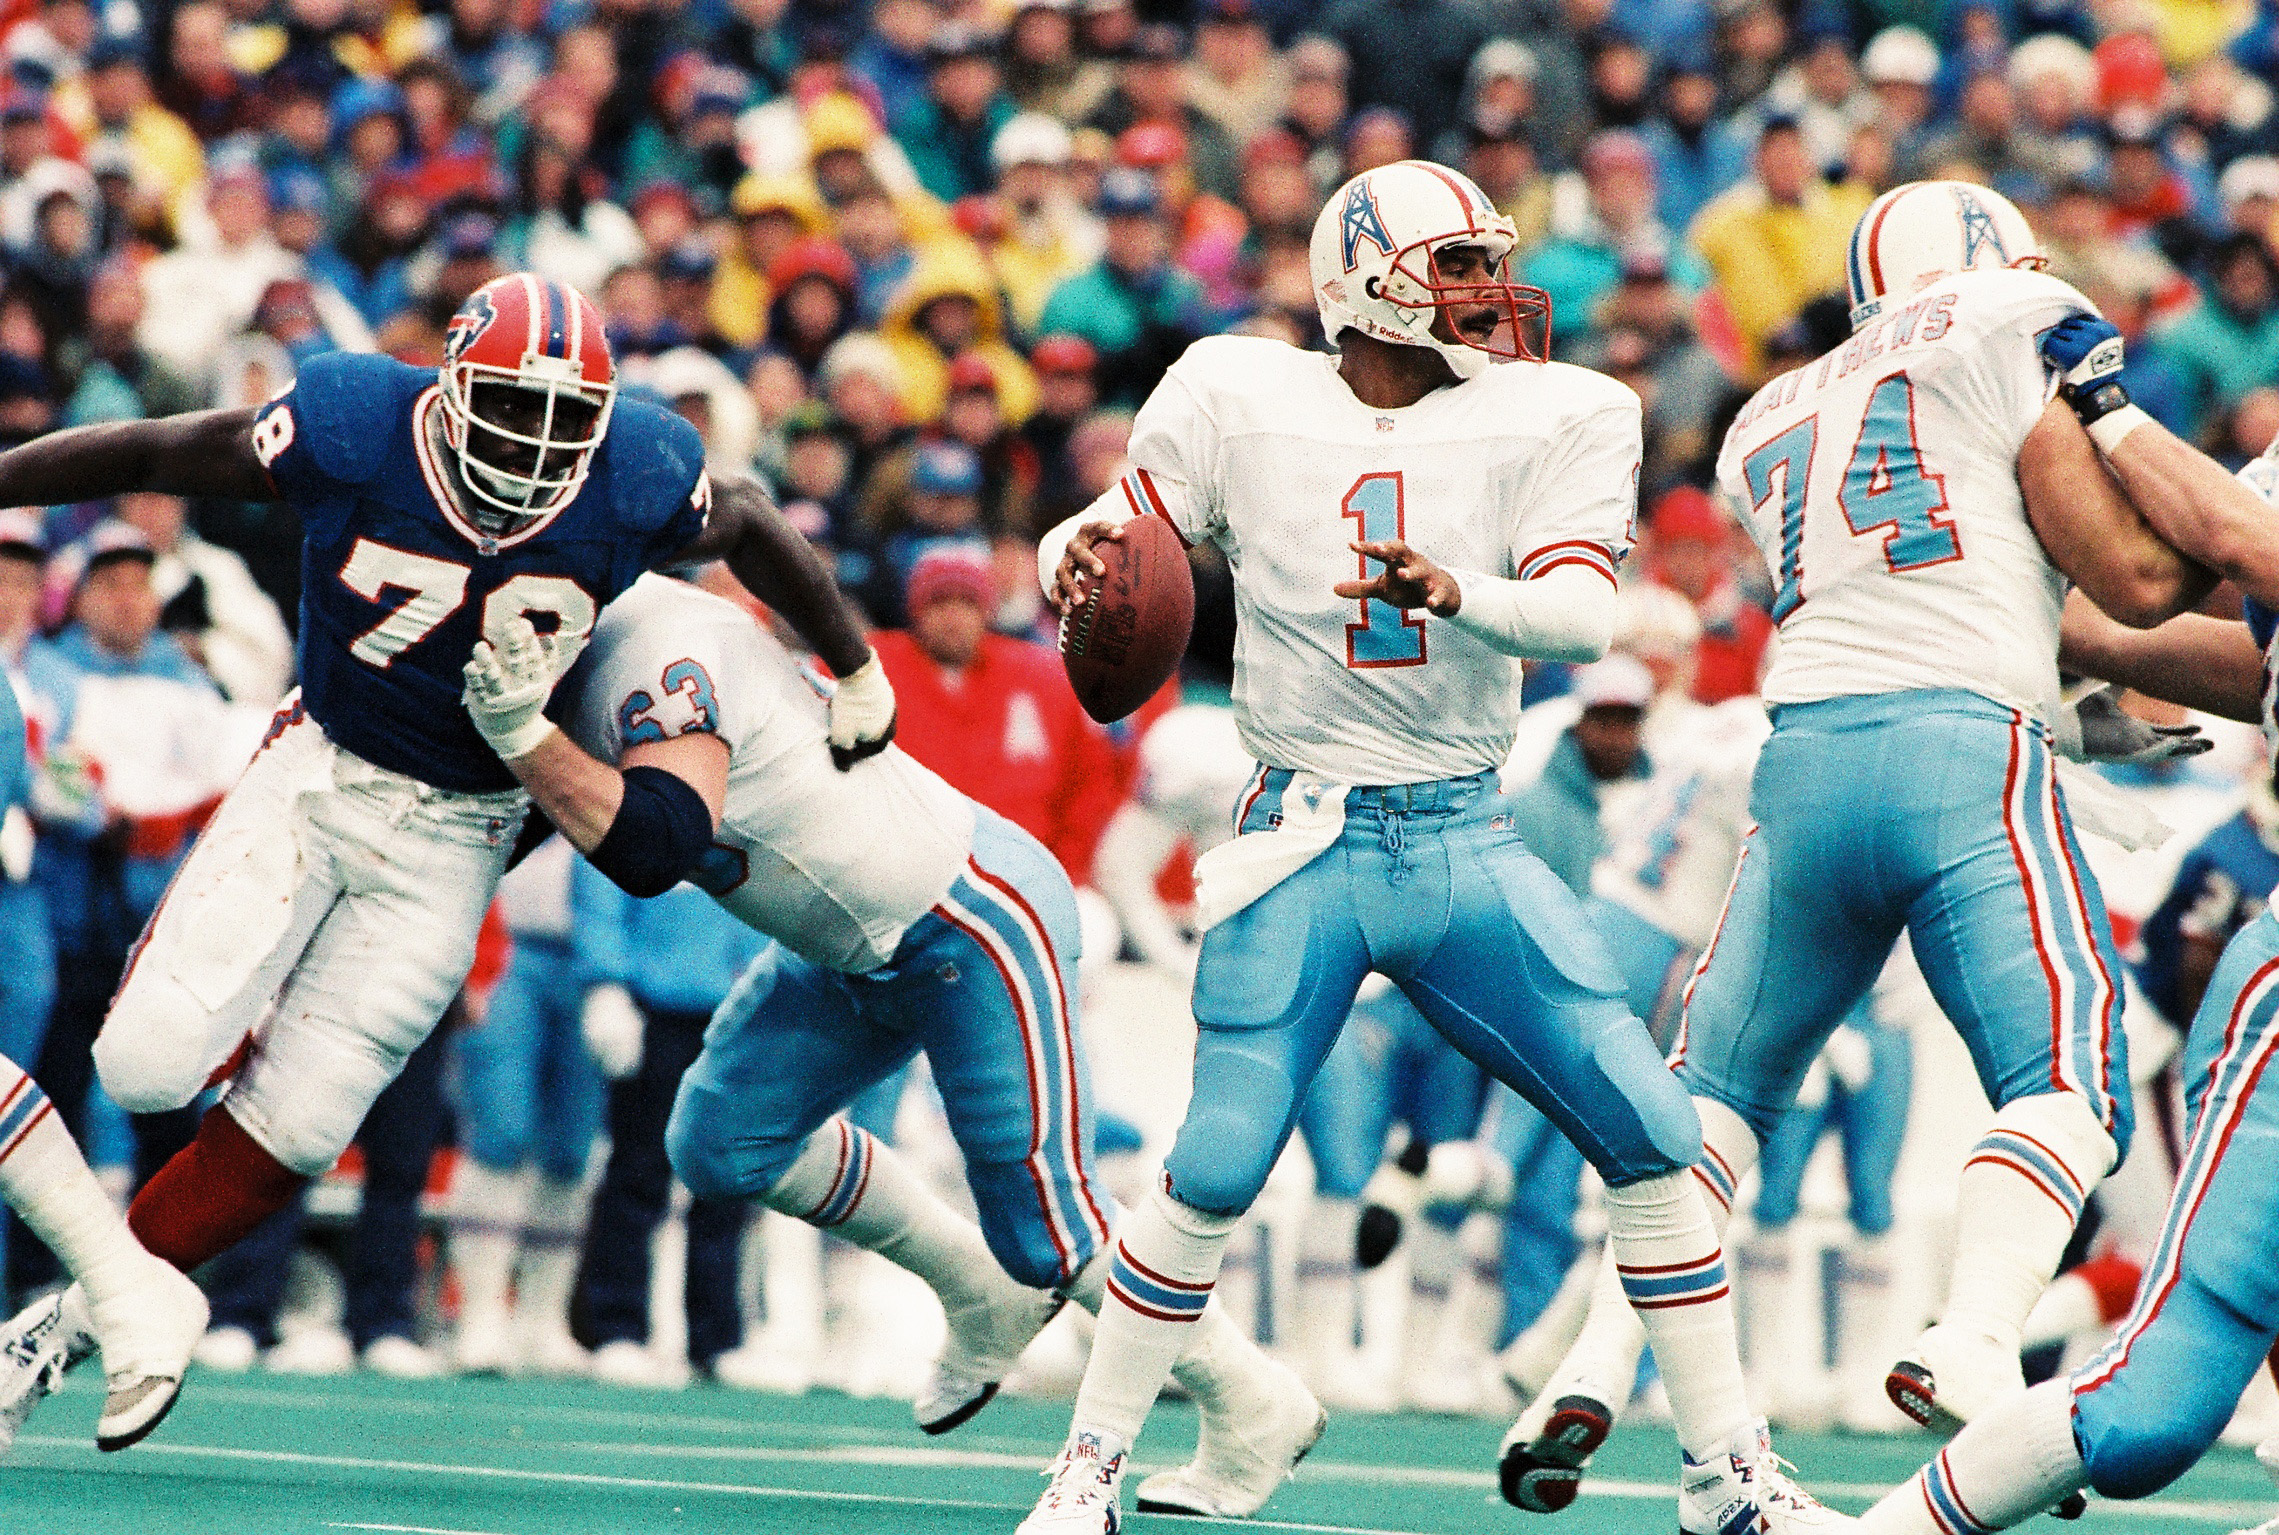 Oilers quarterback Warren Moon throws a pass while pressured by Bills defensive end Bruce Smith in the second quarter of the Bills' comeback victory against the Oilers. (James P. McCoy / Buffalo News)